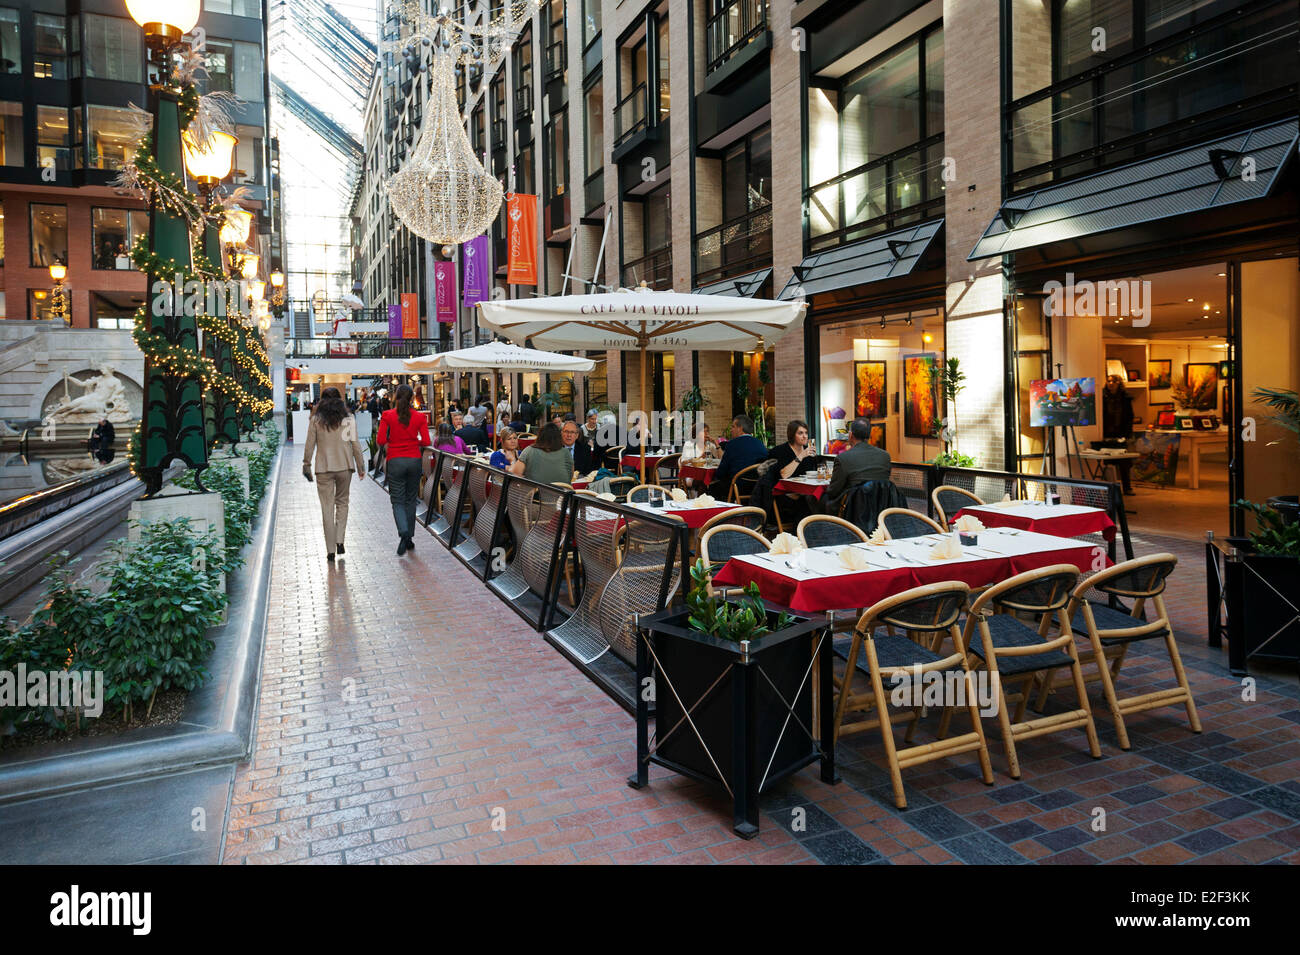 Canada Quebec Province Montreal The Underground City The Ruelle Des Stock Photo Royalty Free